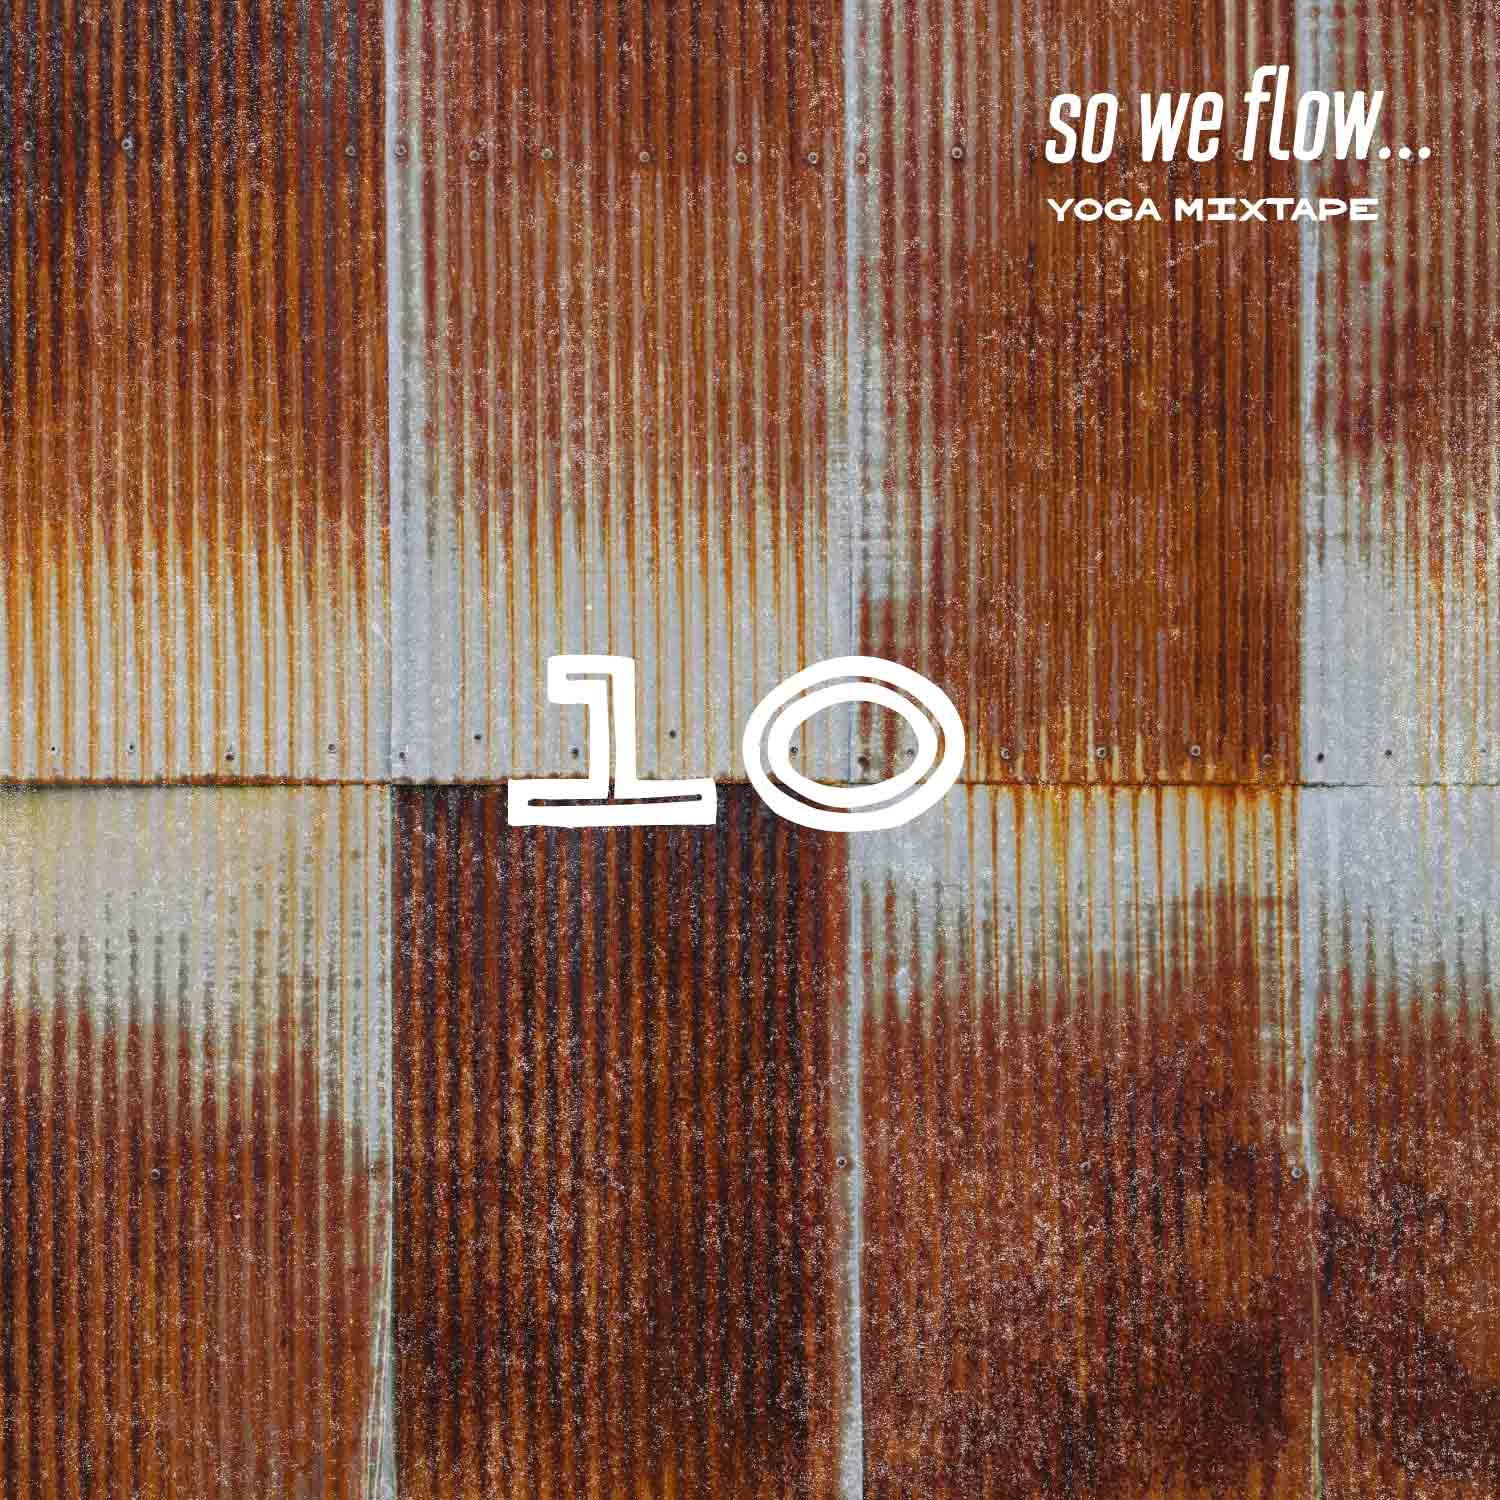 so we flow... Yoga mixtape - 04/18 - Play that yoga music - album art